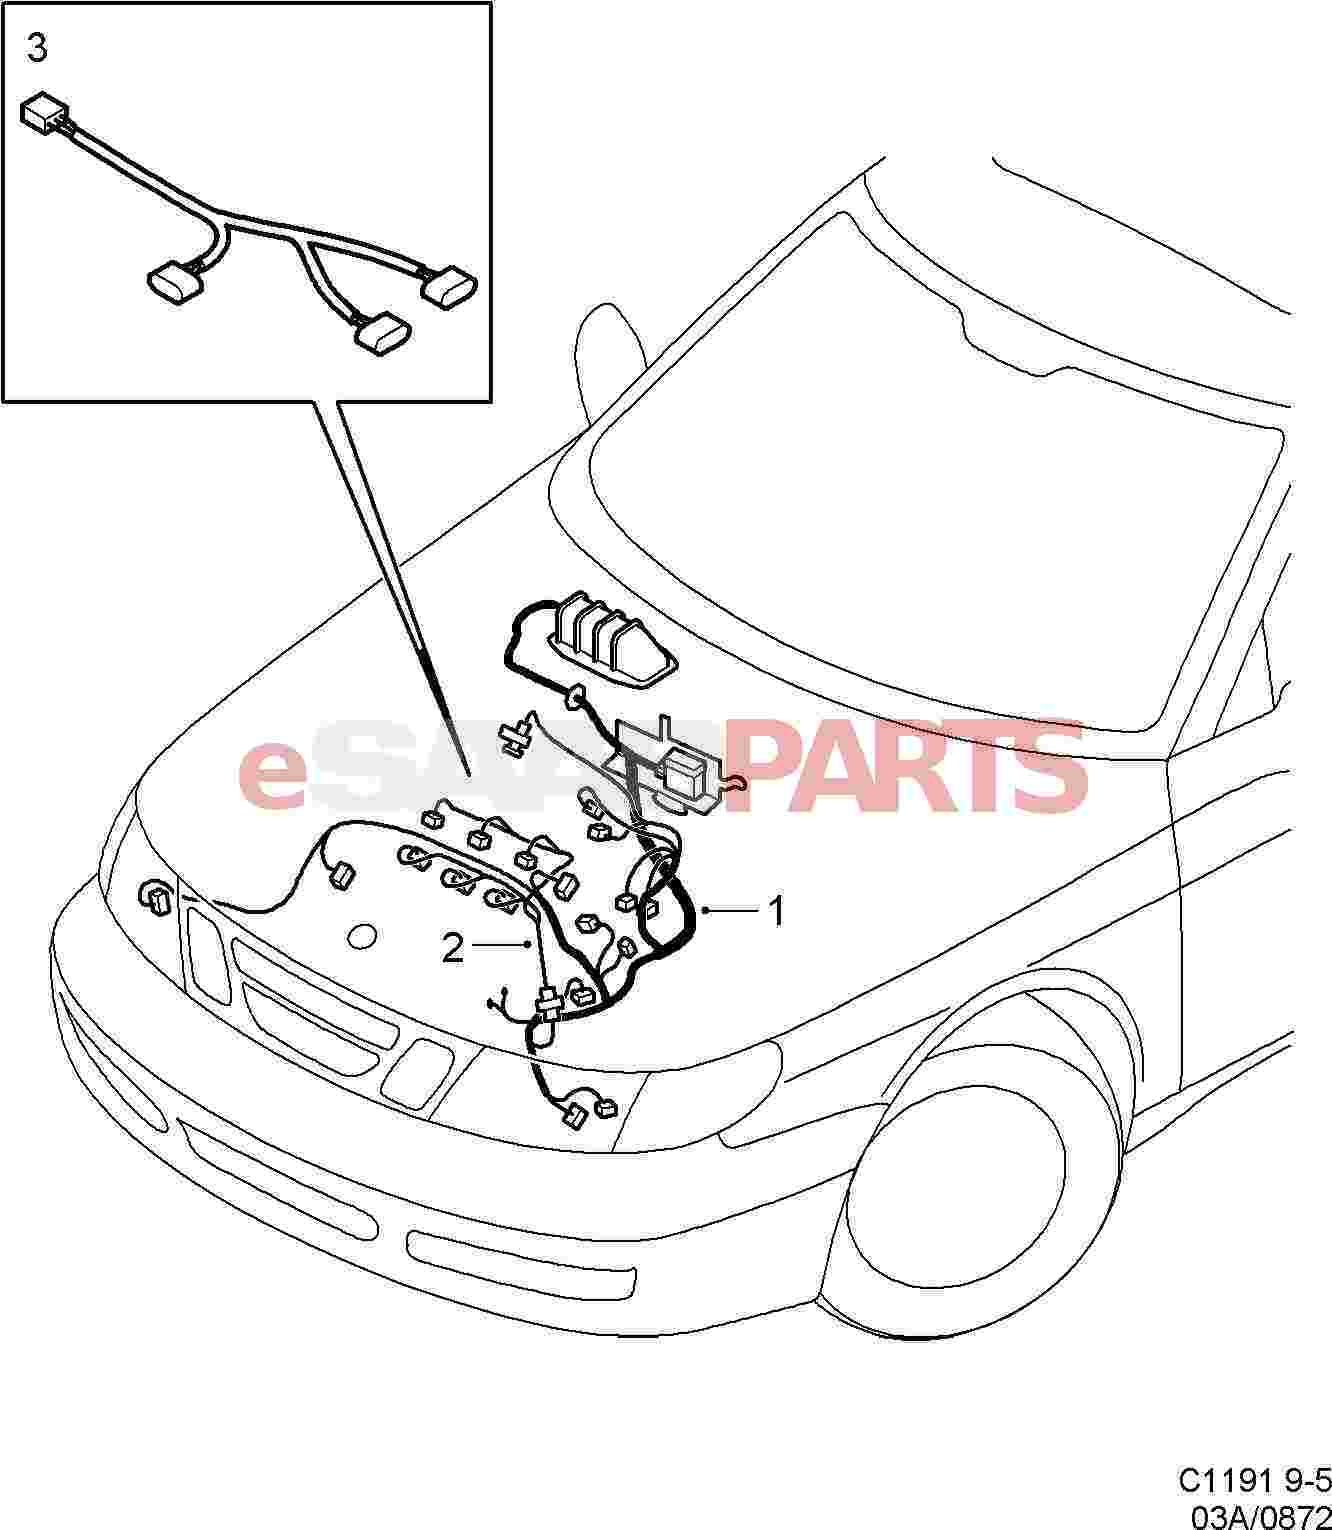 Subaru Ej25 Wiring Harness : Subaru ej wiring diagram download diagrams